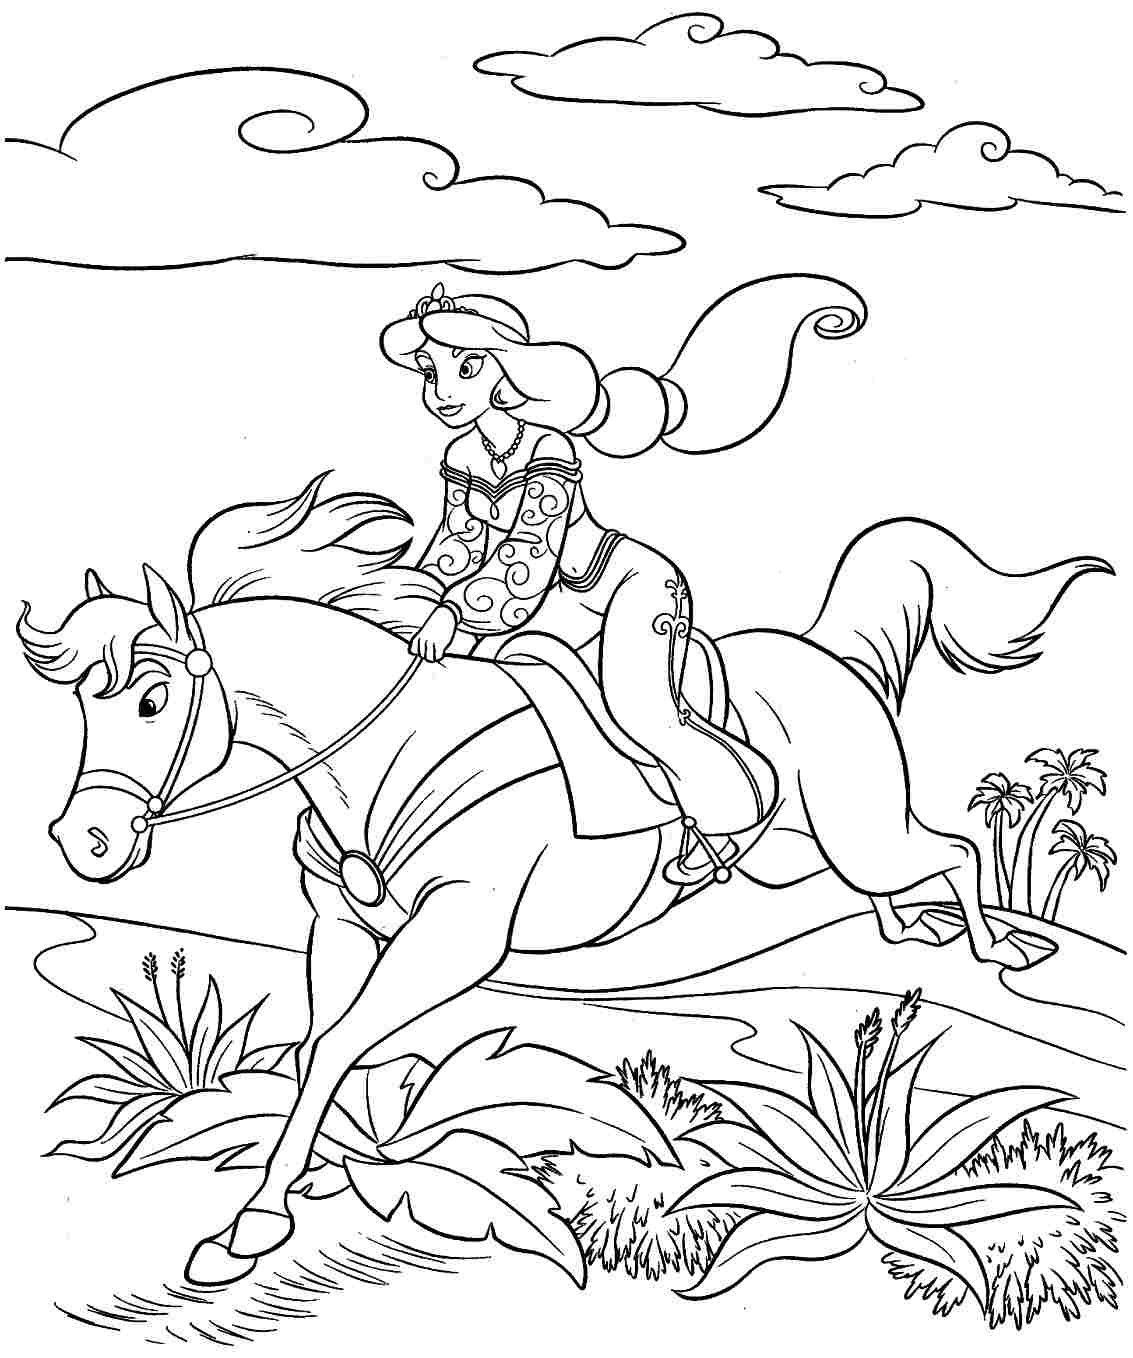 Princess Horse Coloring Page – Through the thousands of images on ...